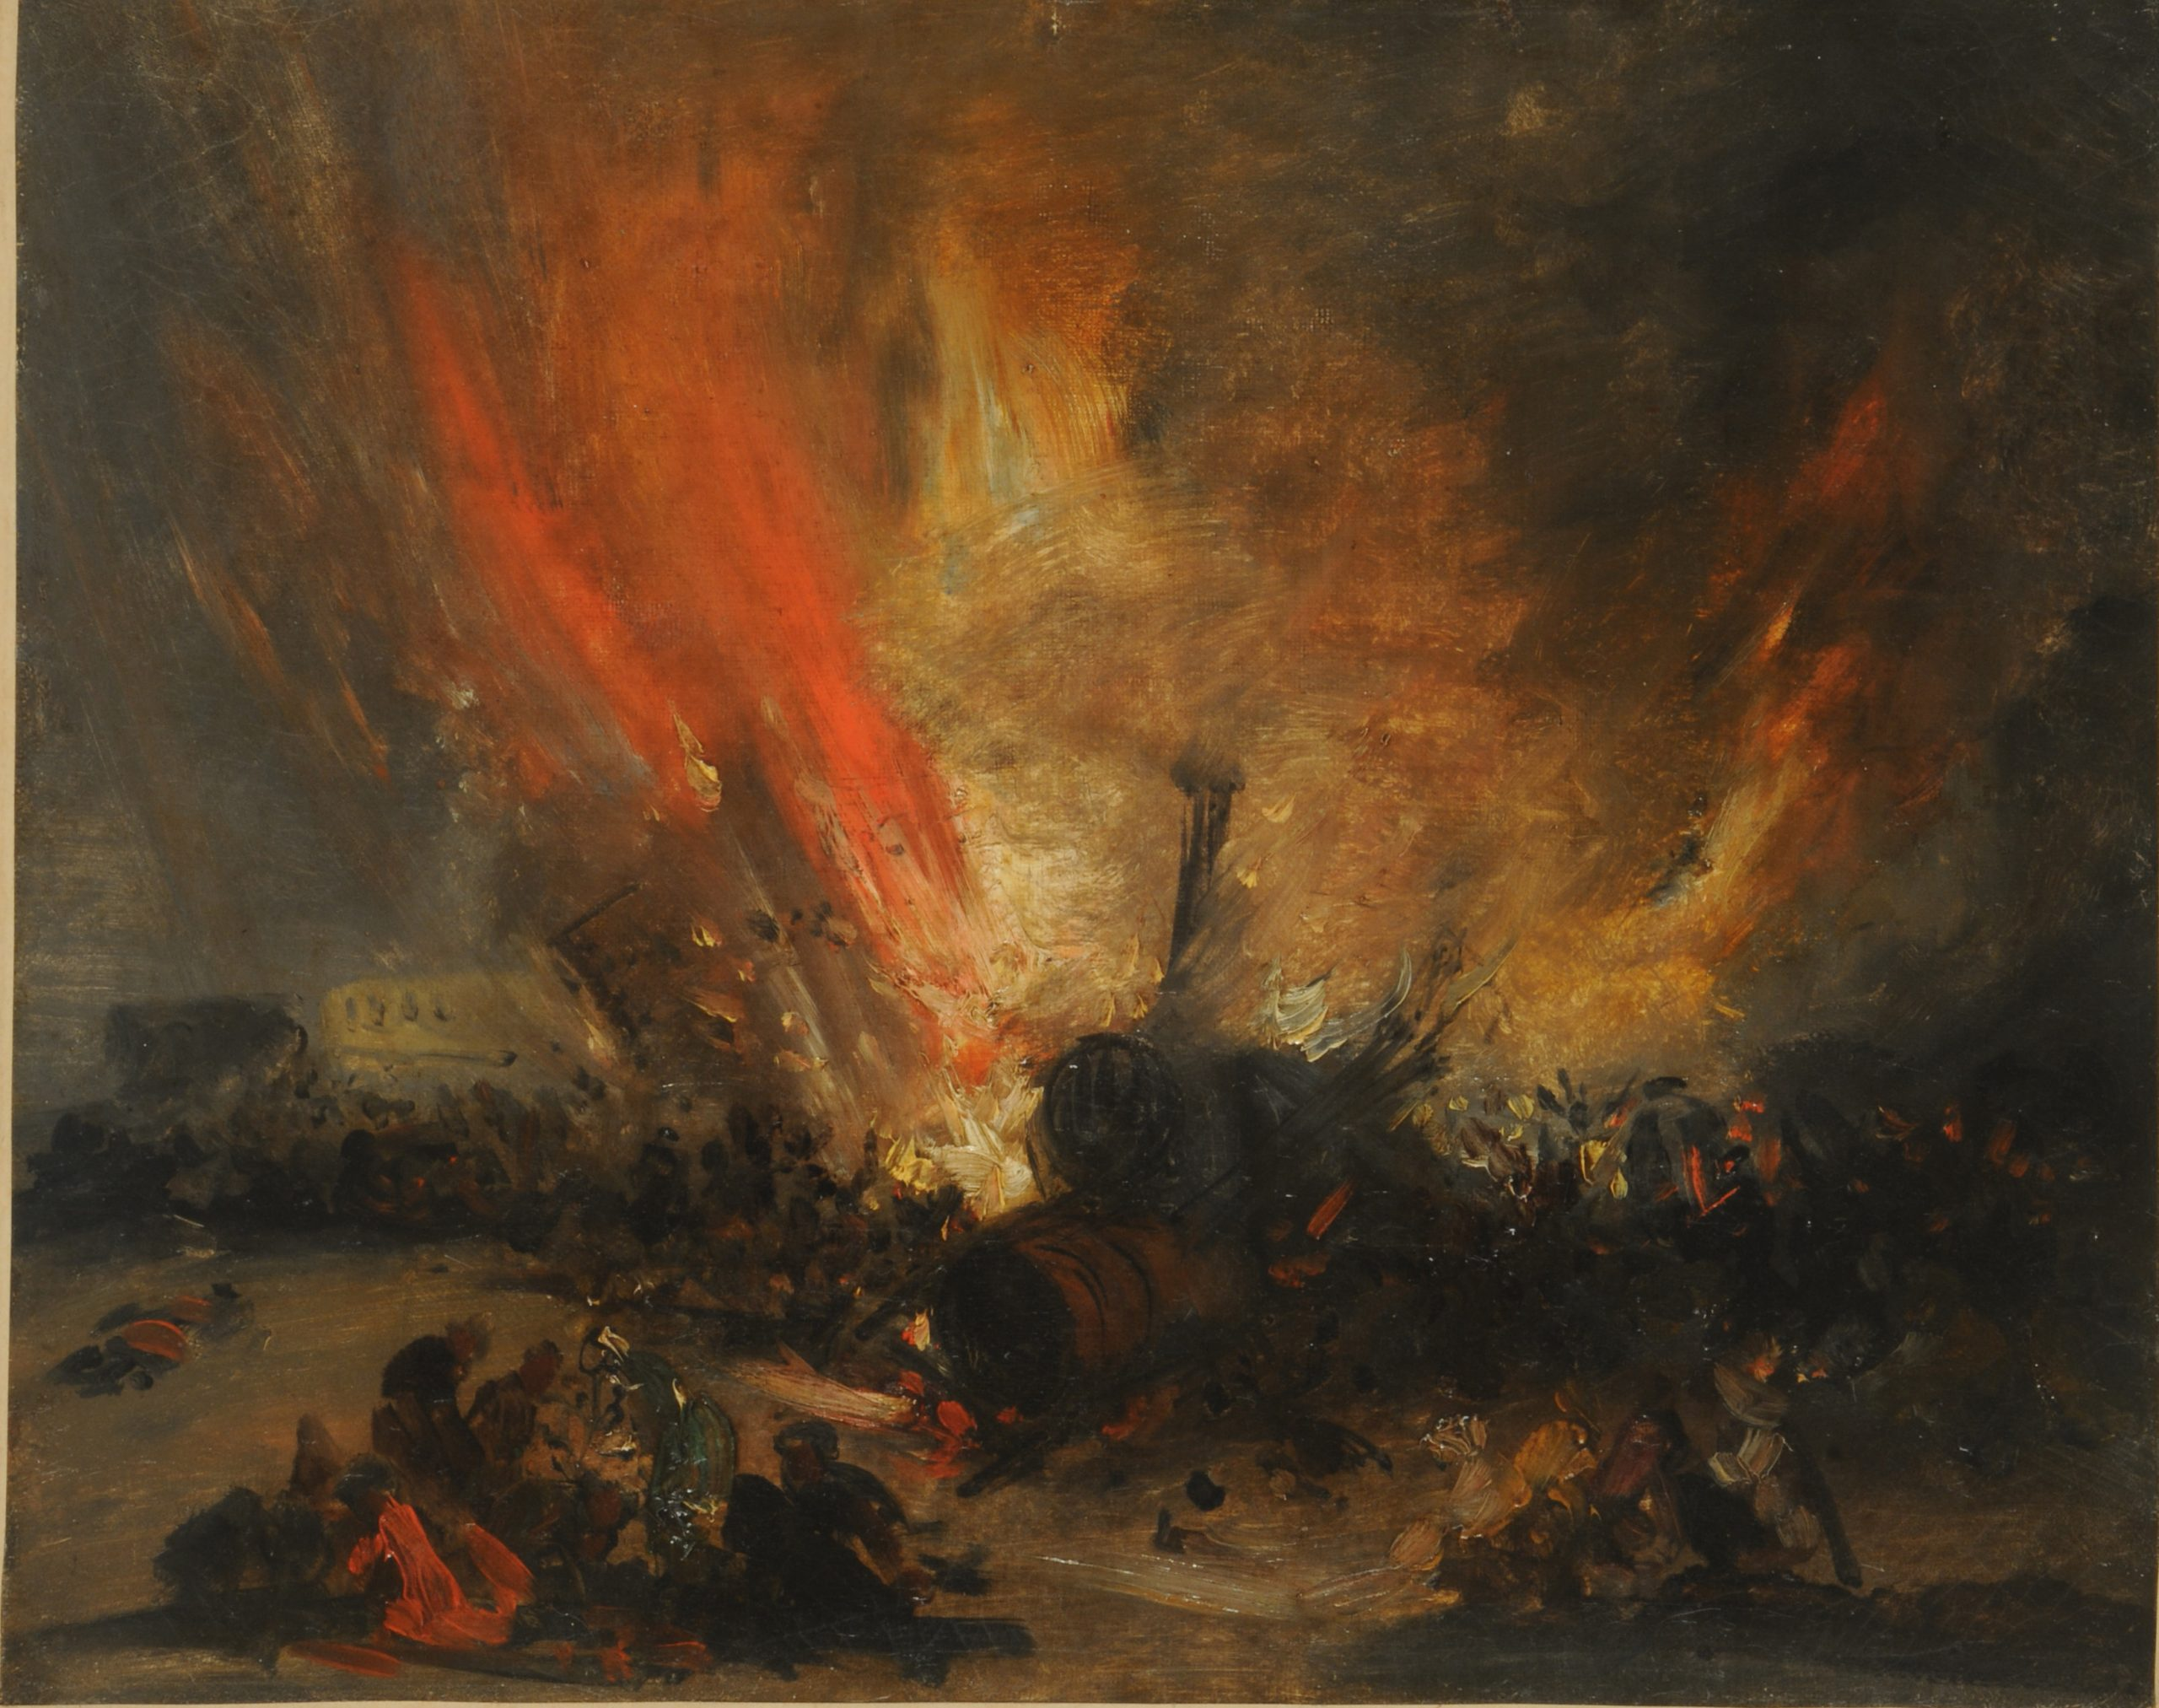 Oil painting of an explosion of a Locomotive. The train is almost lost in a blur of flames.